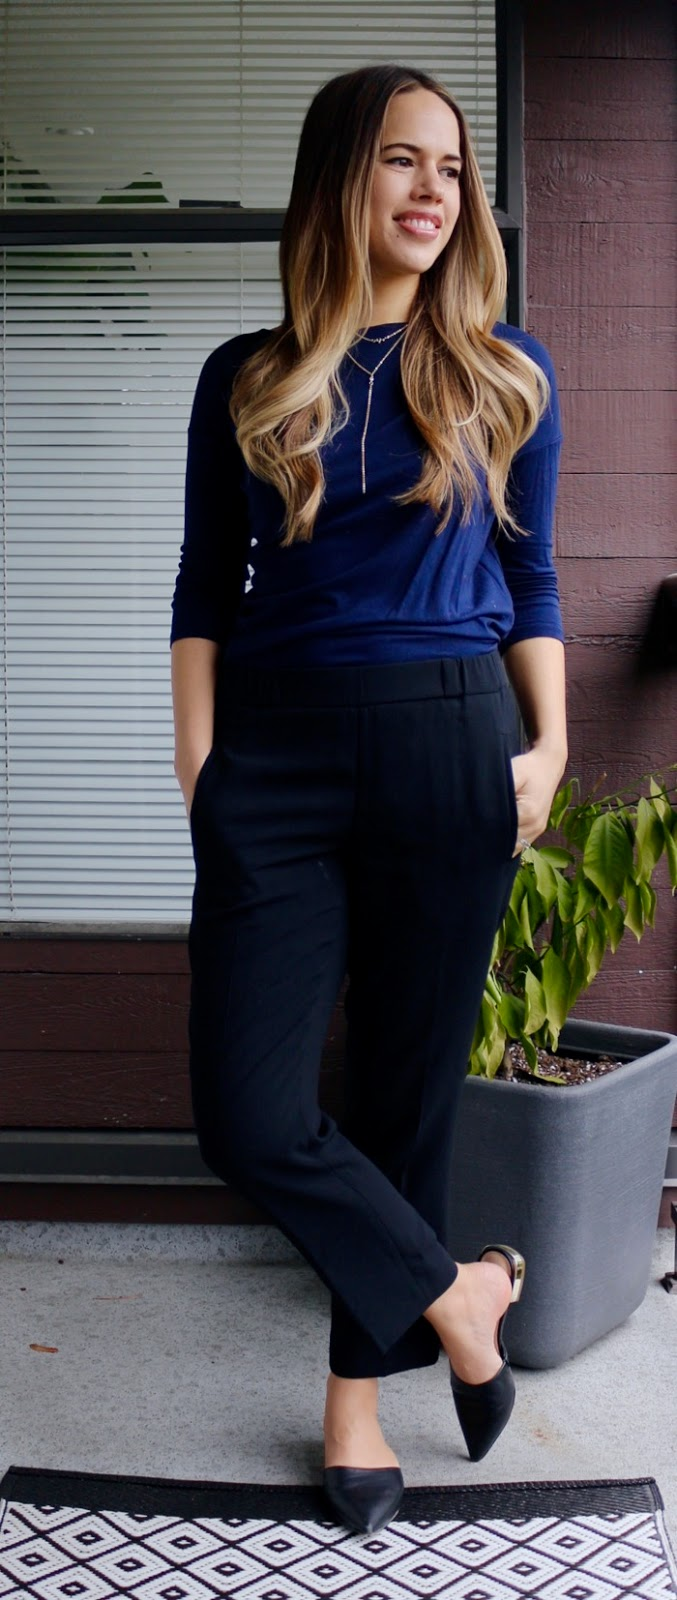 Jules in Flats - Navy Top with Aritzia Dress Pants